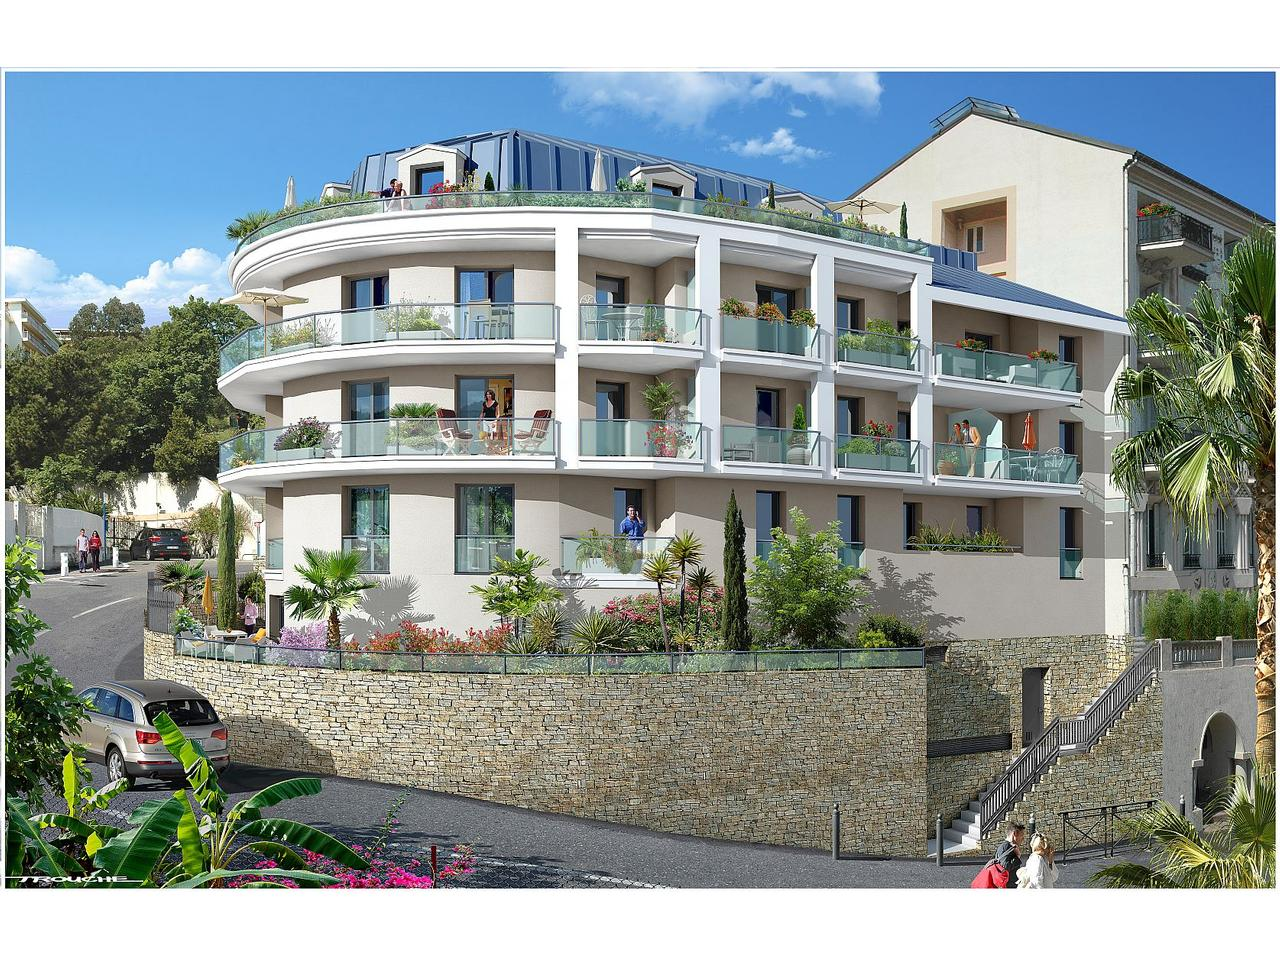 Immobilier nice vue mer appartement nice programme neuf nice nord 3 pieces a la vente - Location 3 pieces nice nord ...